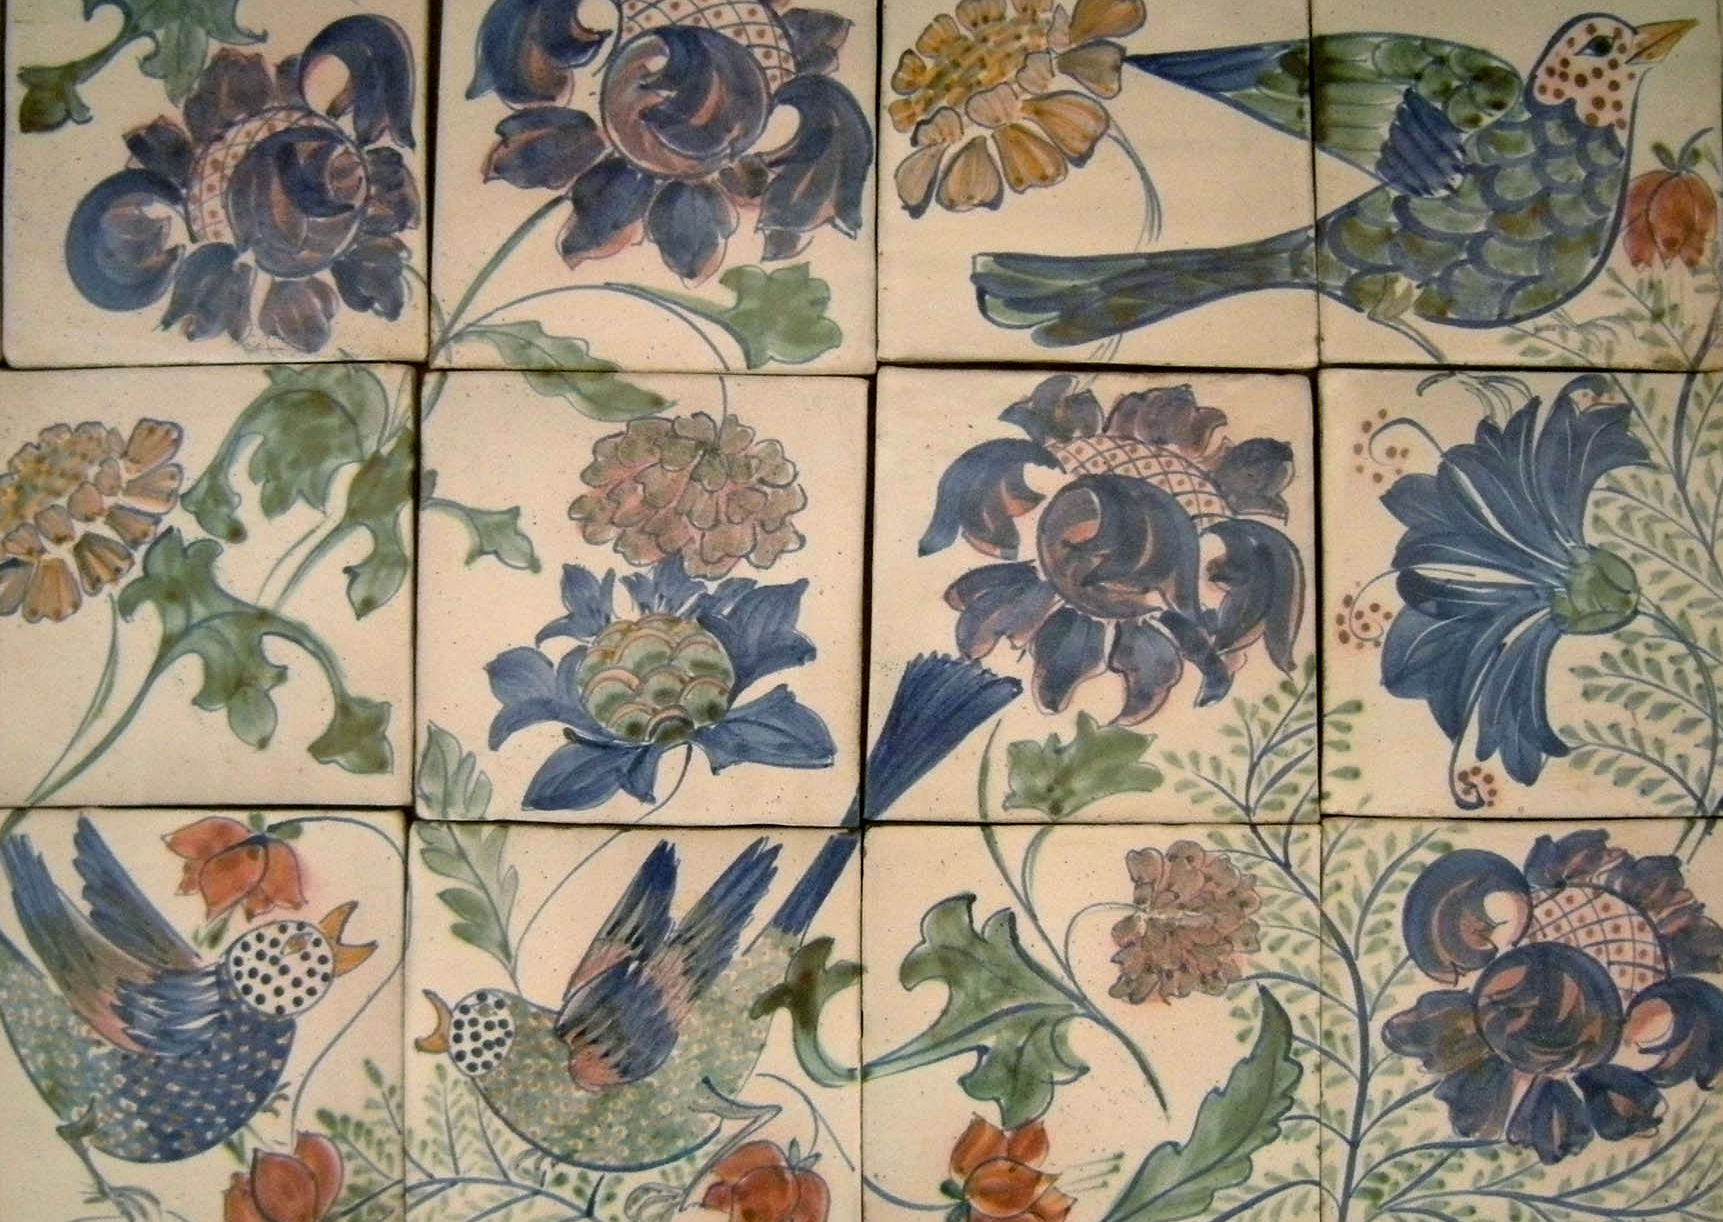 Kinsman Blake Ceramic Hand Decorated, Hand Made Tiles, Birds and Flowers